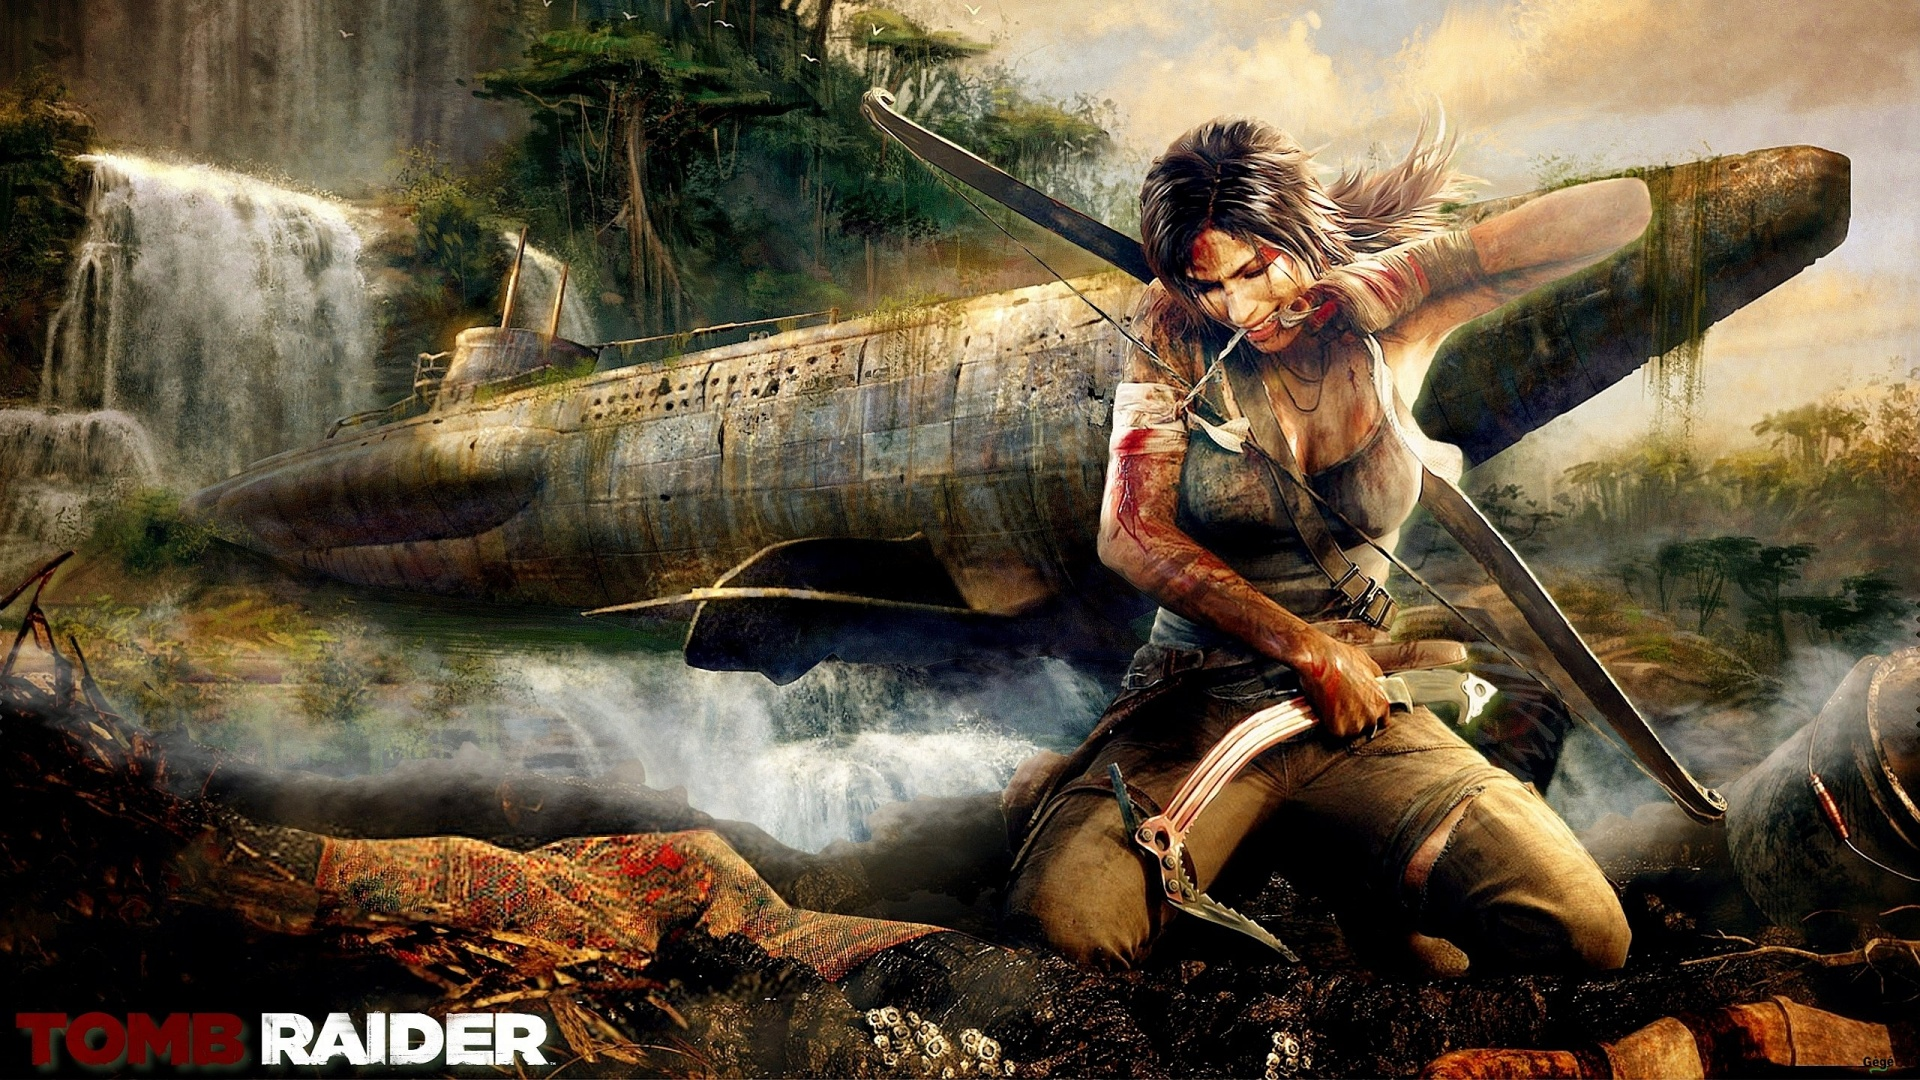 Tomb Raider Wallpapers 1920x1080 Posted By John Peltier